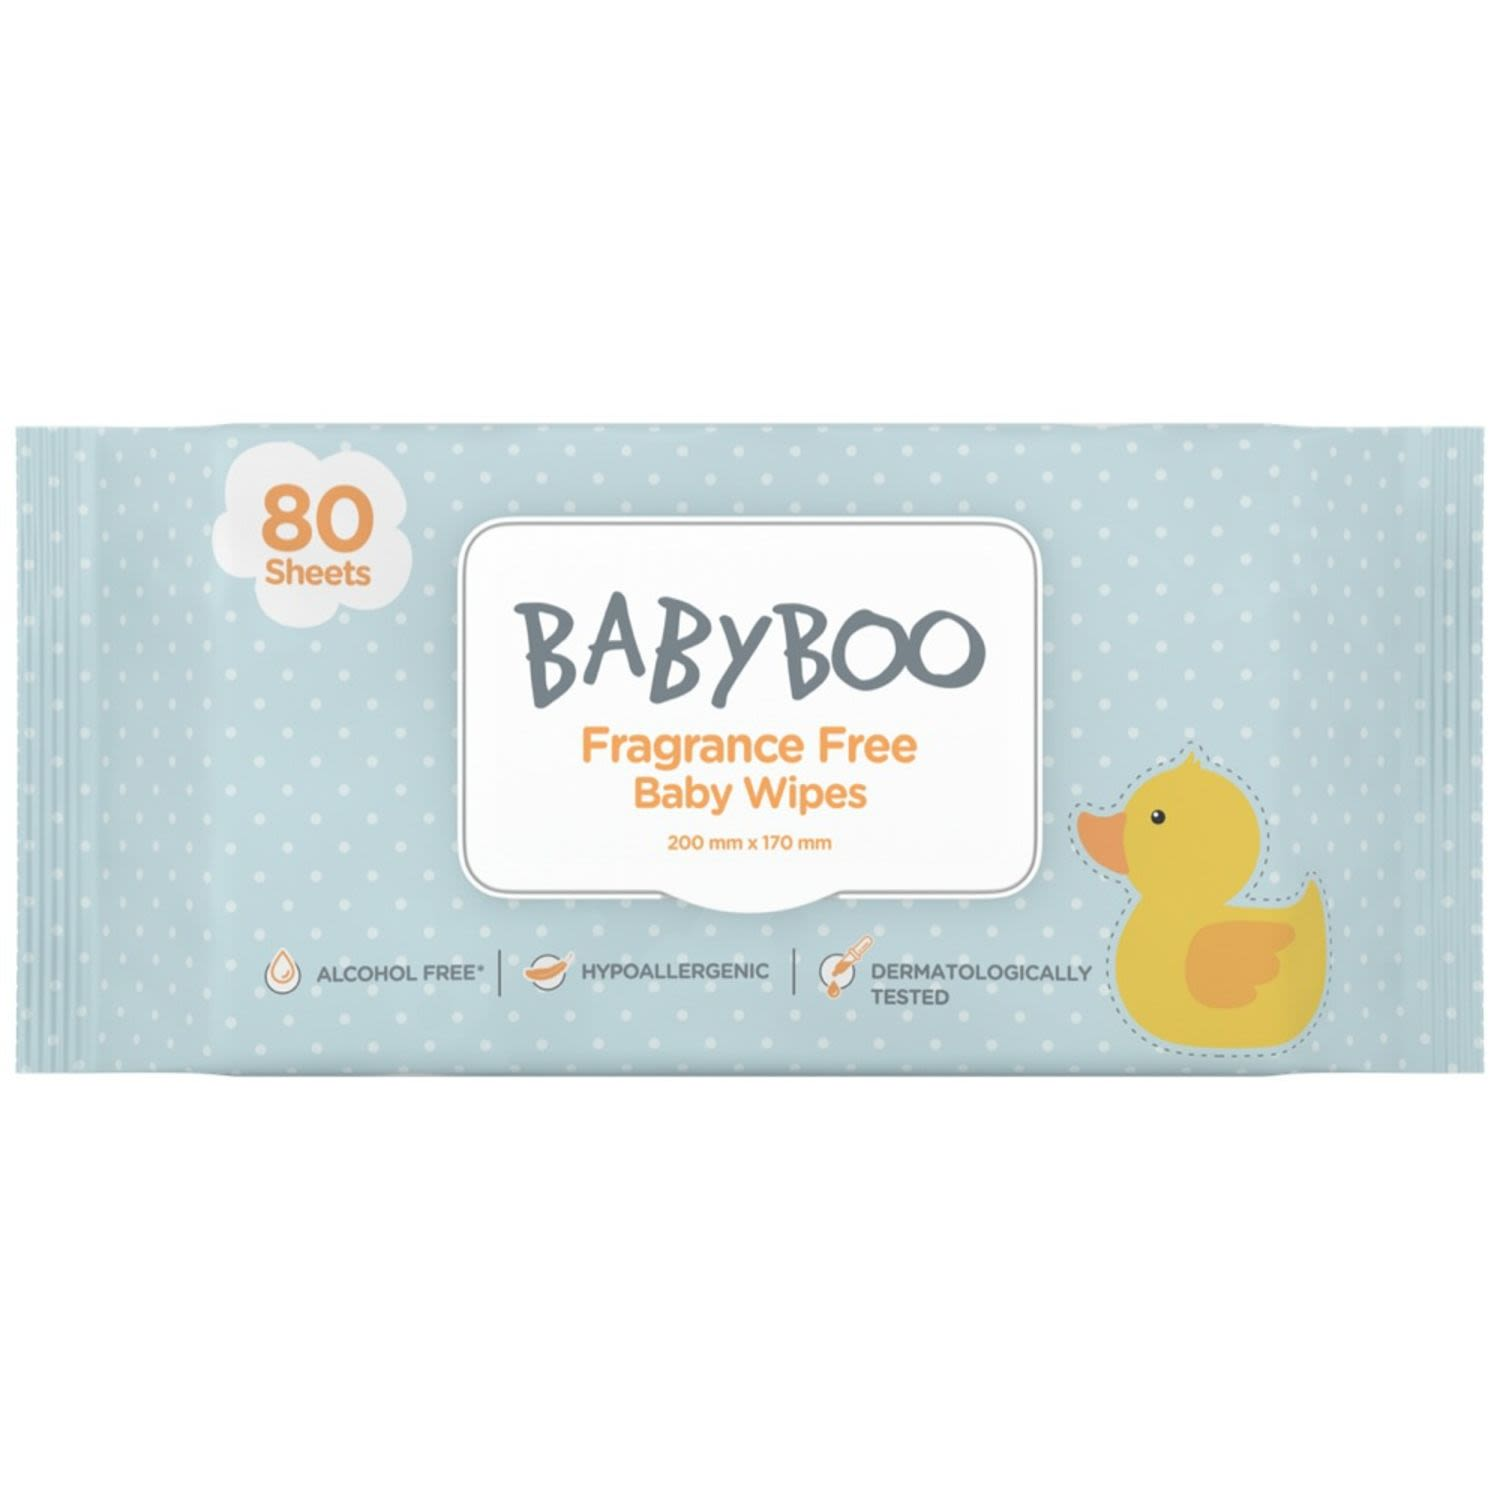 Babyboo Unscented Baby Wipes, 80 Each